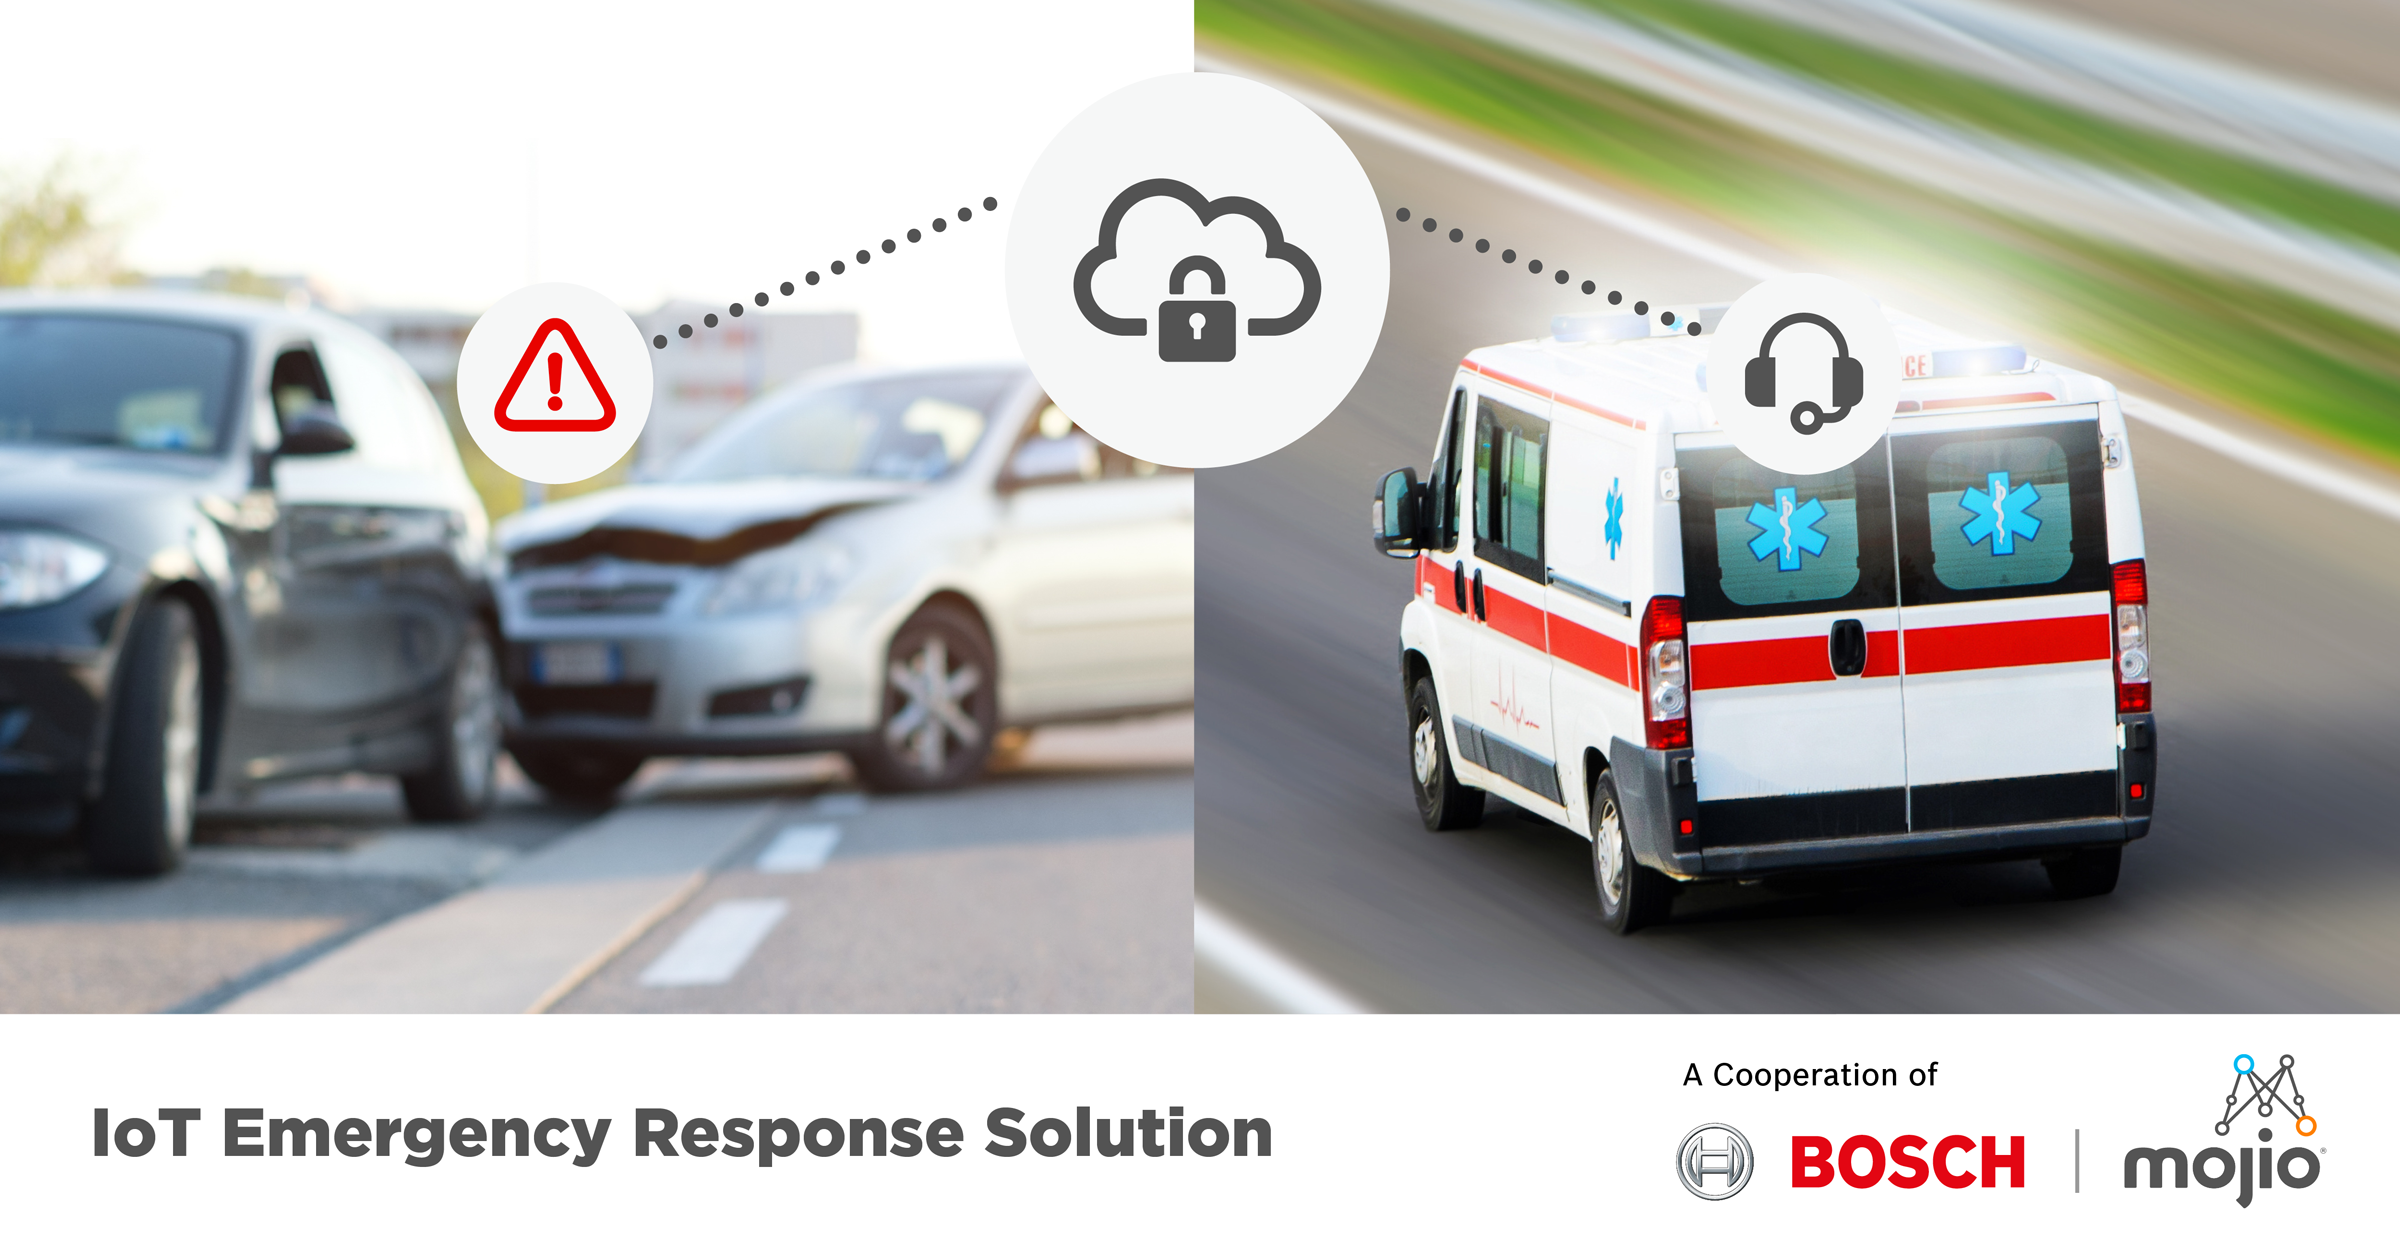 Bosch and Mojio Introduce IoT Emergency Response Solution for Any Passenger Vehicle on the Road